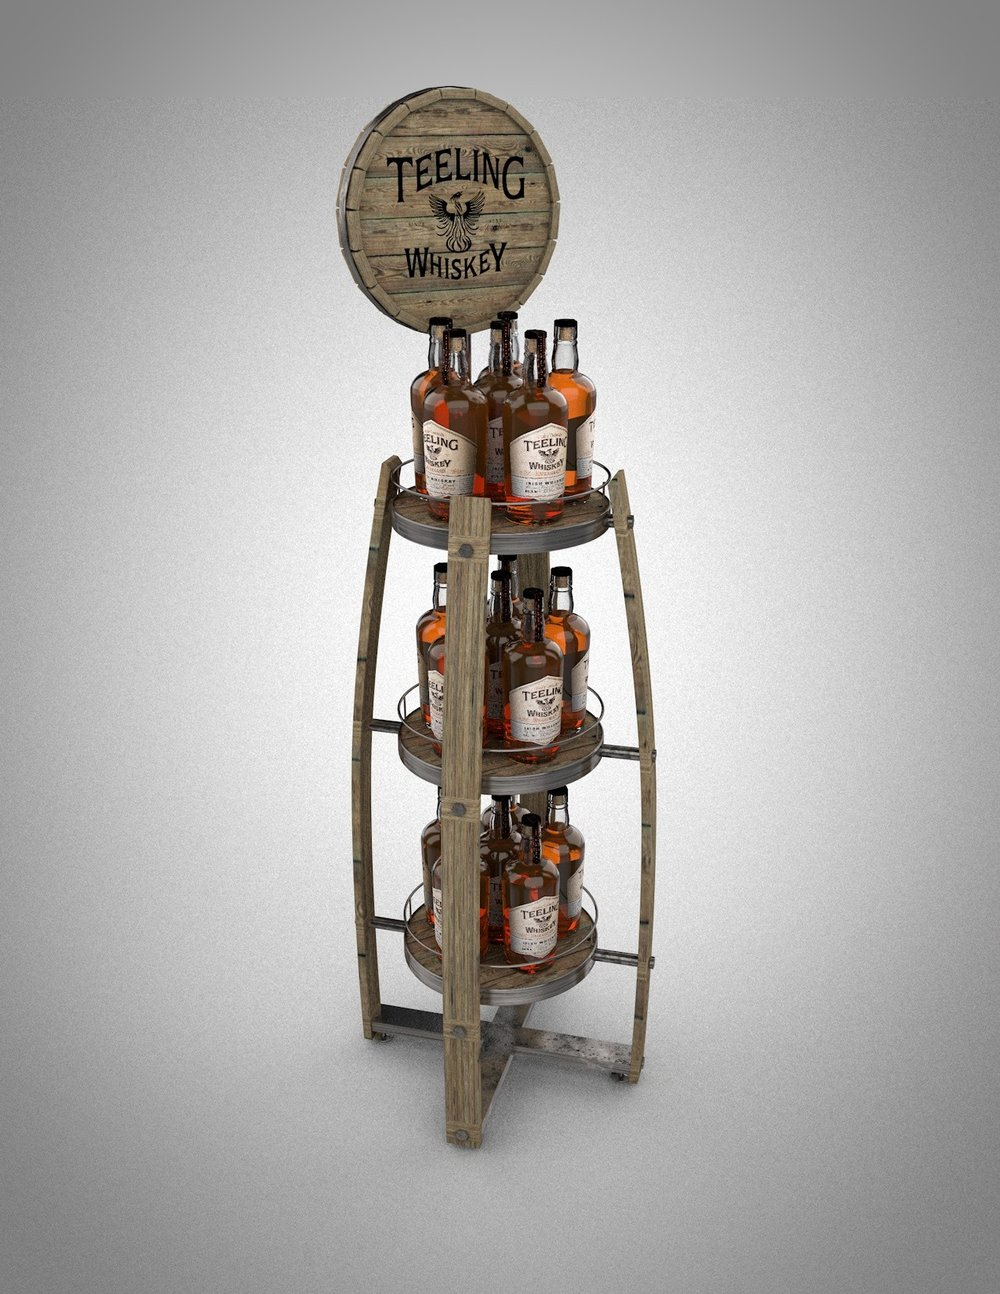 Teeling Whiskey Floorstand r2.jpg